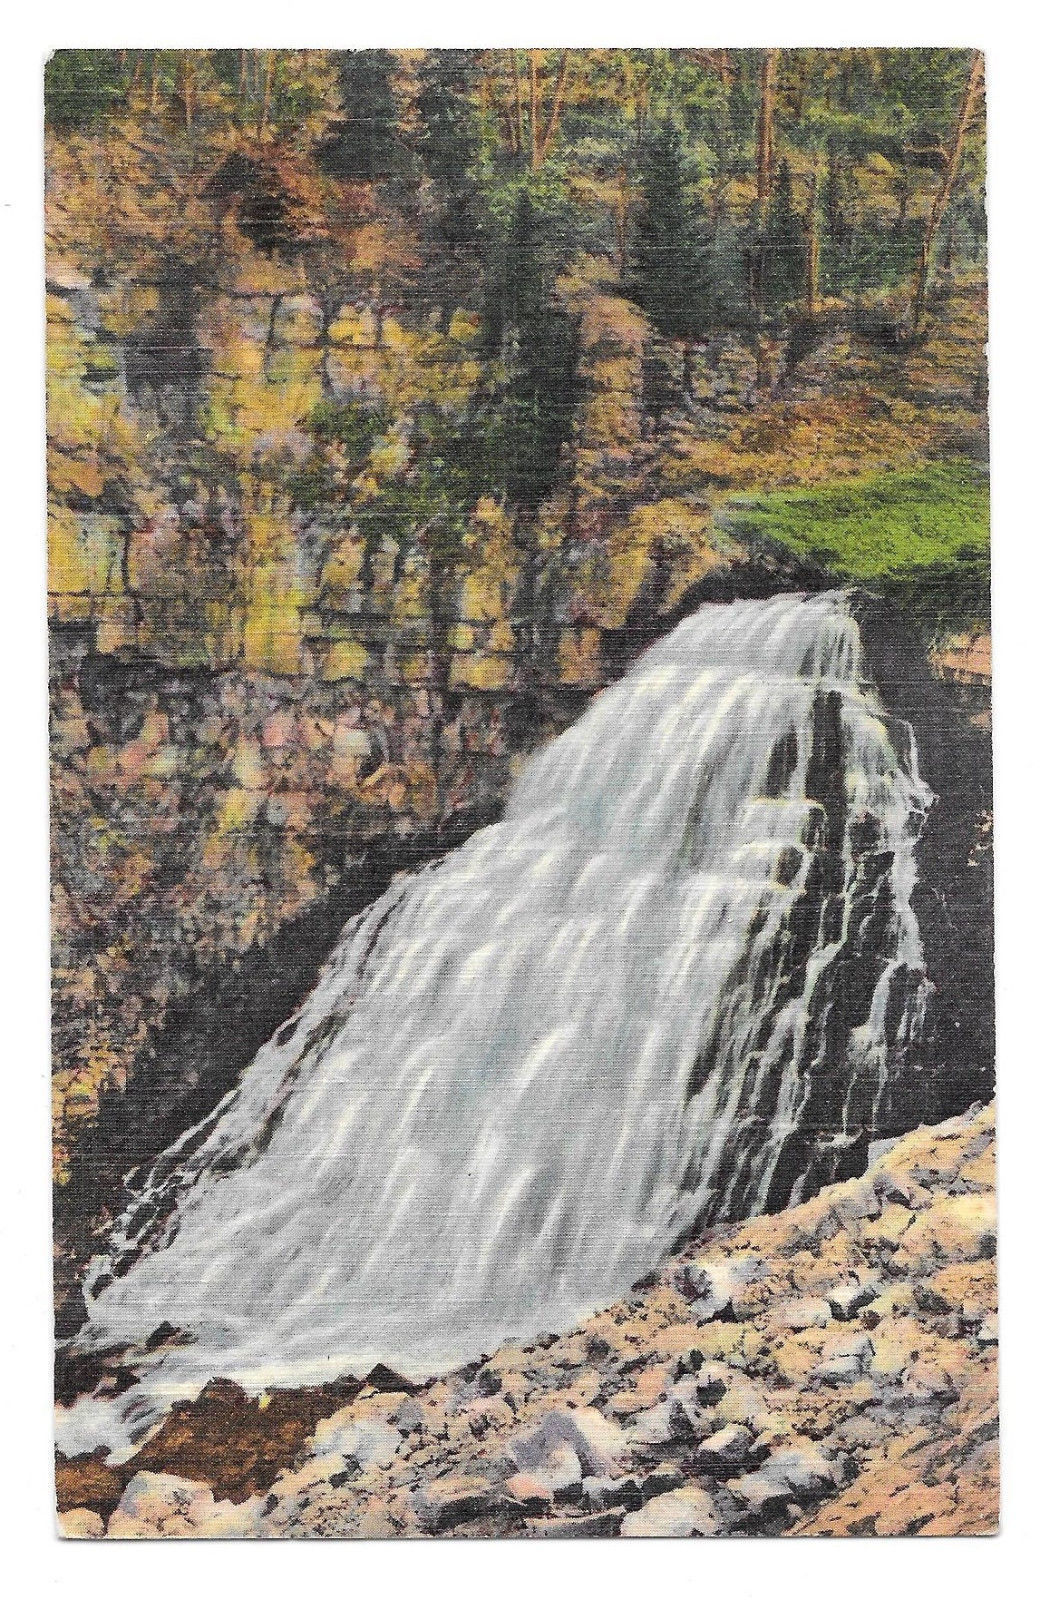 WY Yellowstone National Park Rustic Falls Golden Gate Canon Vtg Linen Postcard